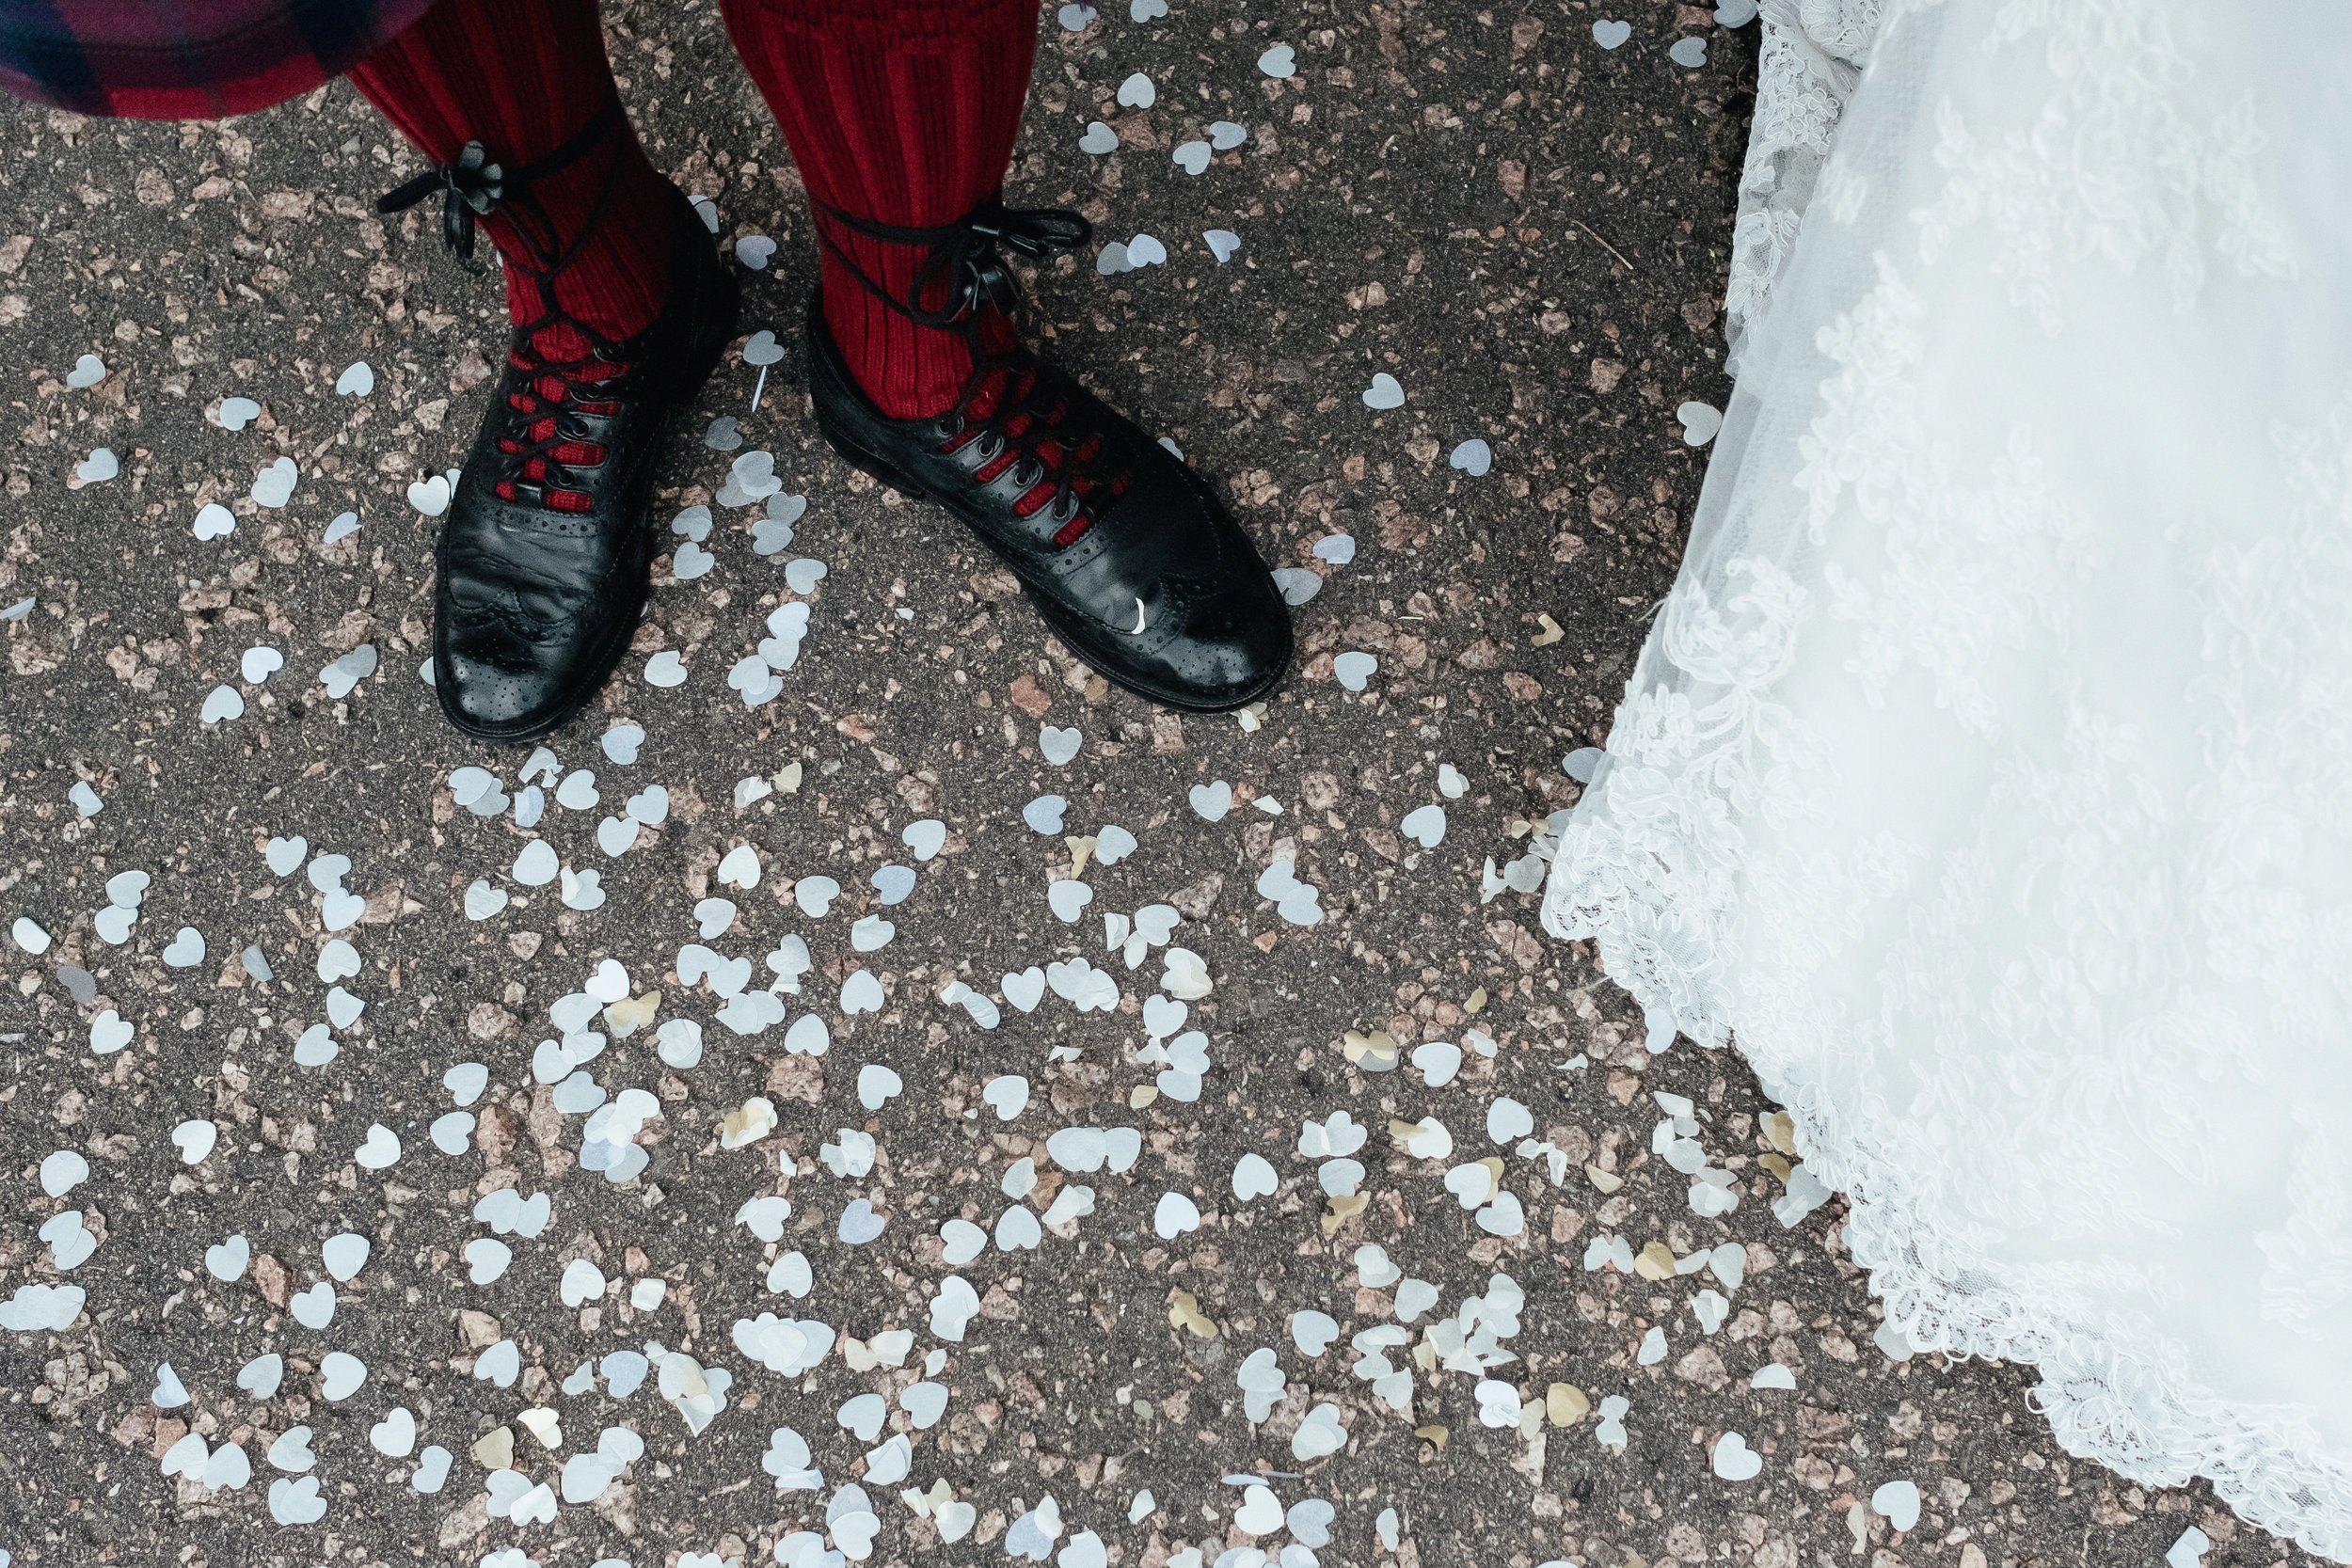 Red socks and confetti